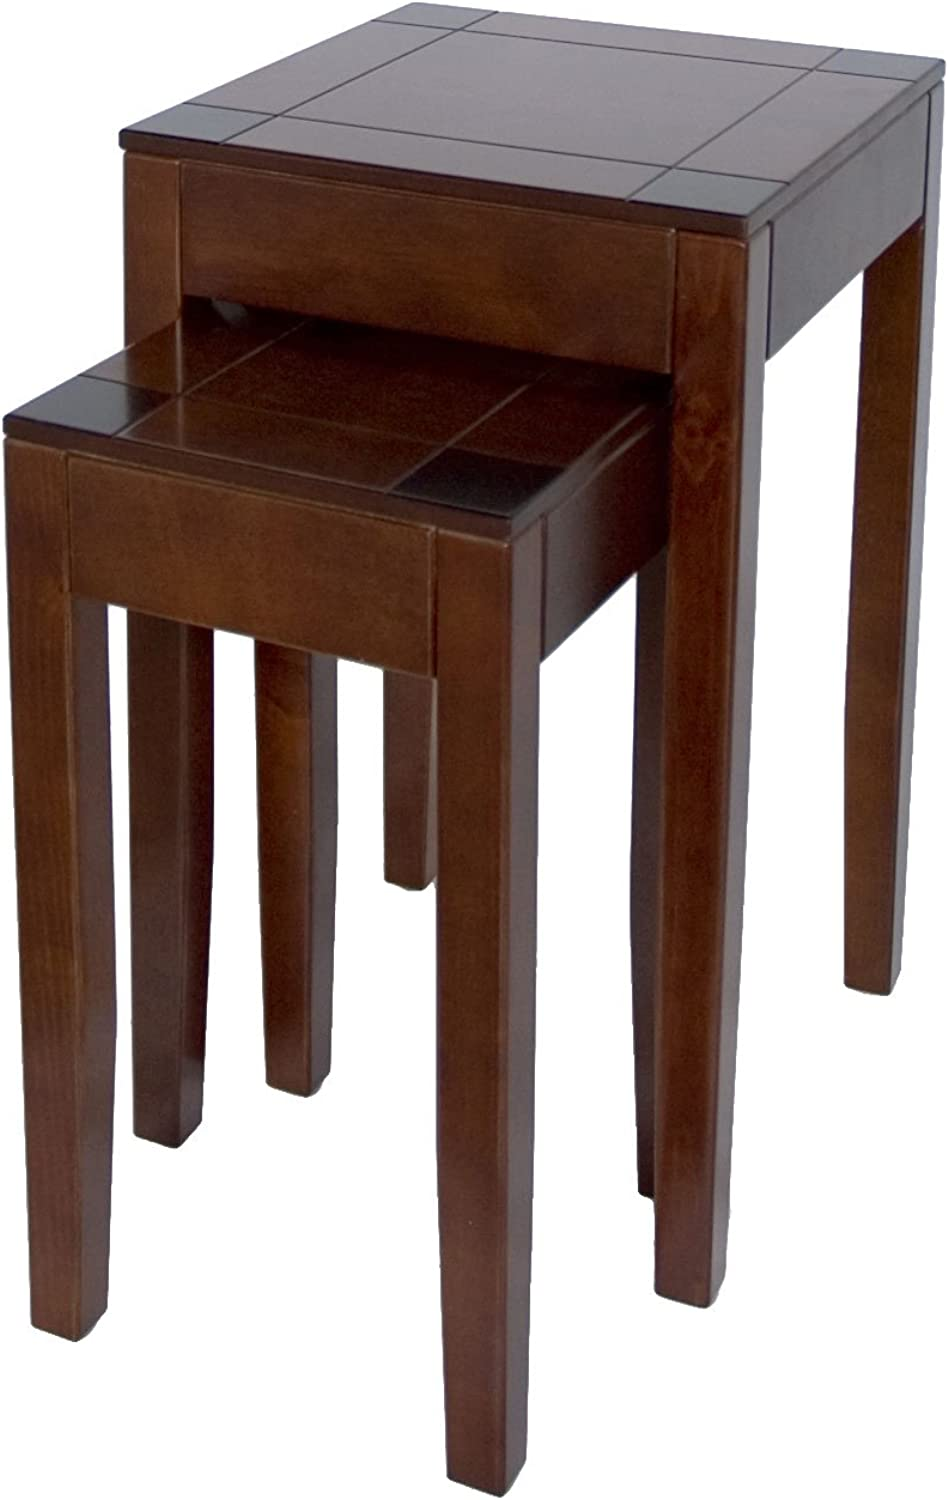 A68021 Wooden Nesting Table Set of 2